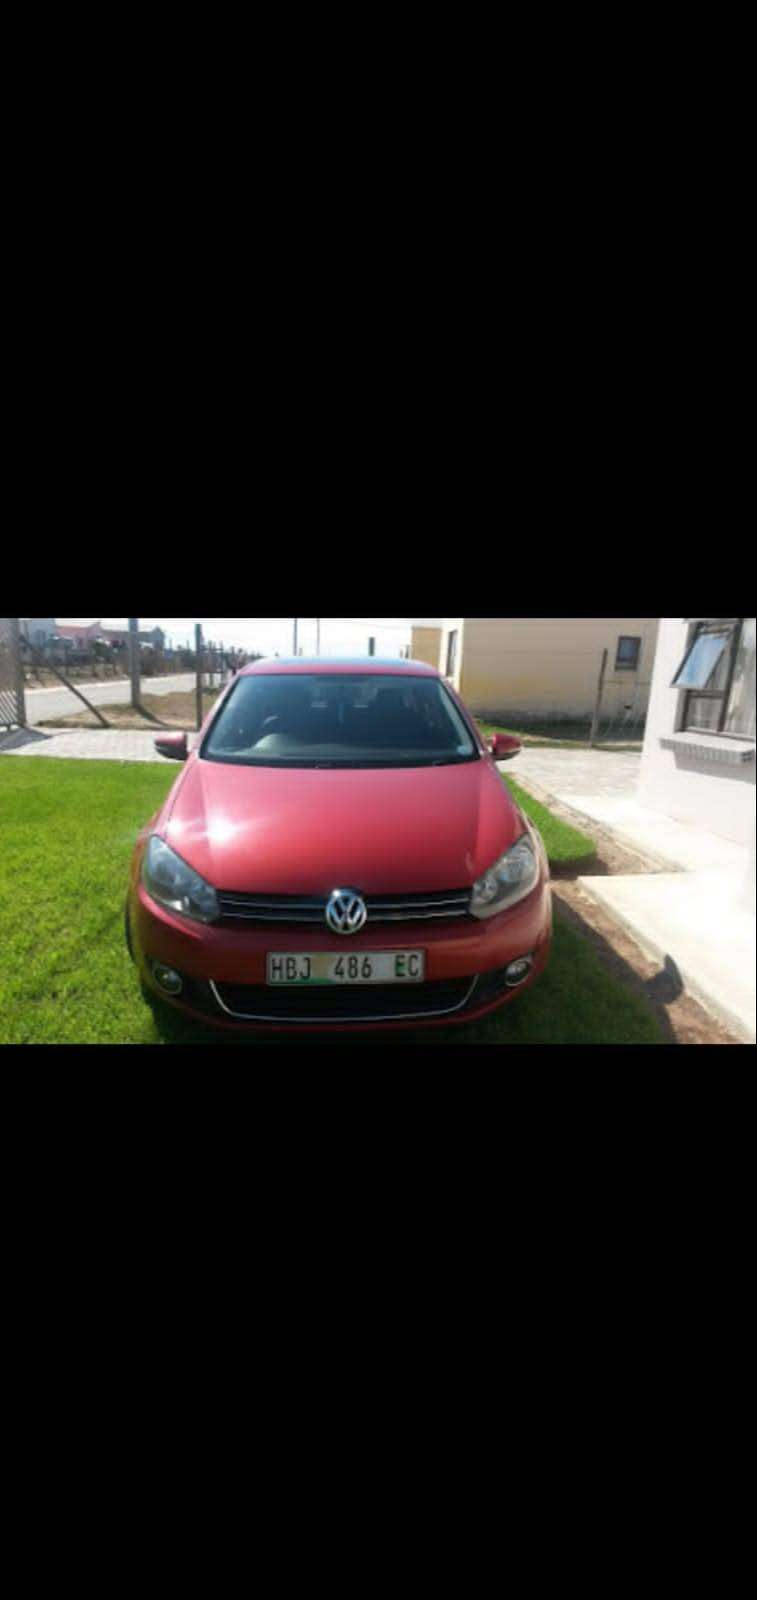 Golf 6 vw 2.0 diesel inemmaculate comdtouch screen radio leather seats 0